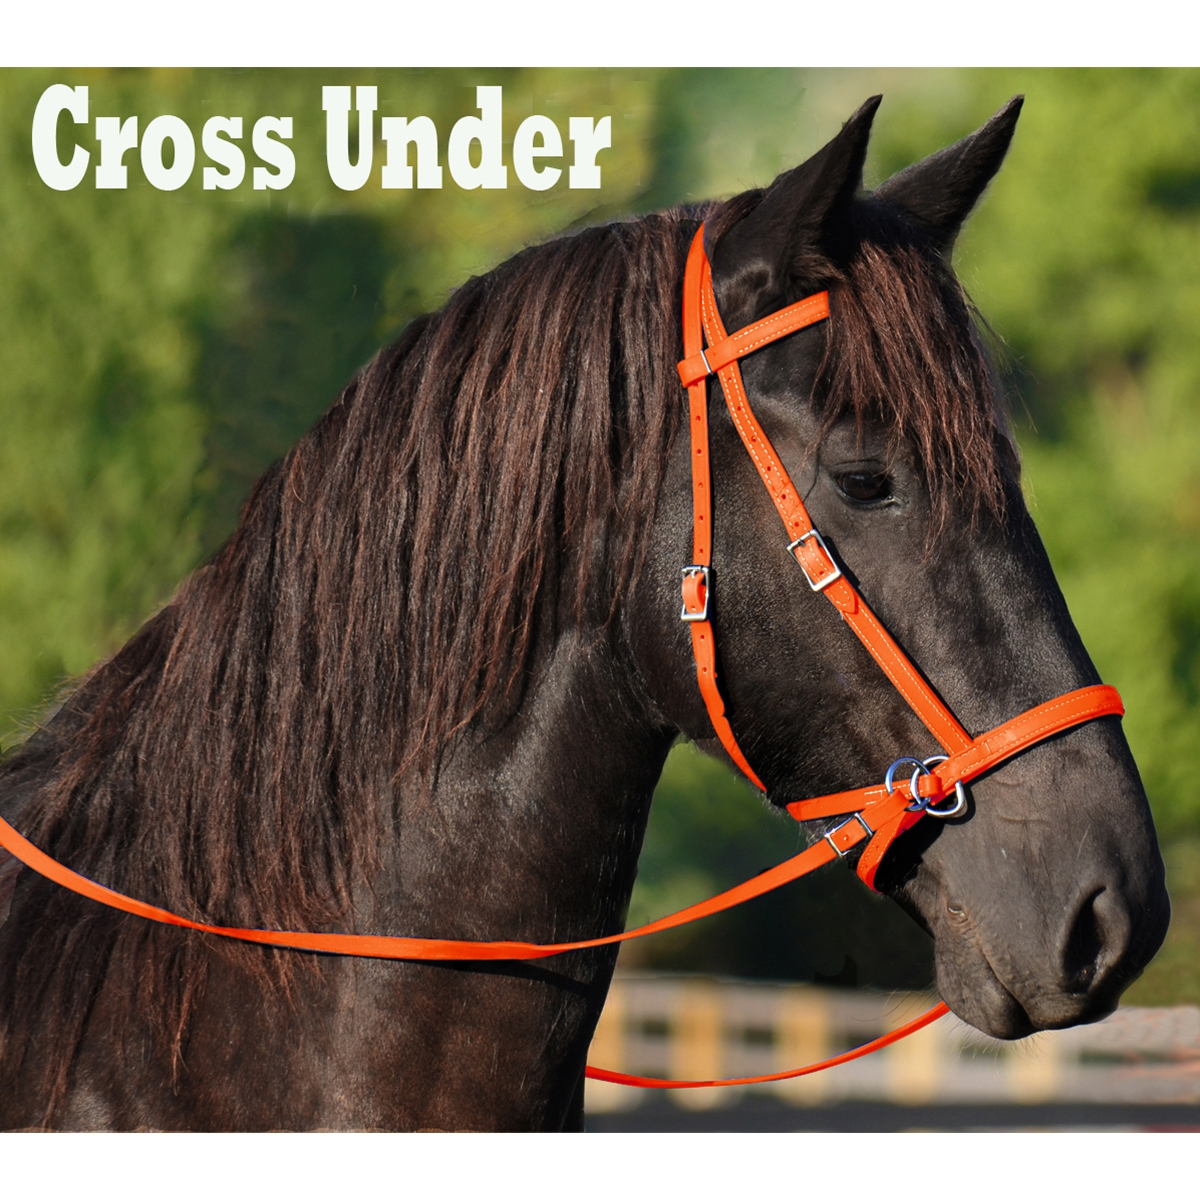 Buy Orange 2 In 1 Bitless Bridle For Horses Online From Two Horse Tack